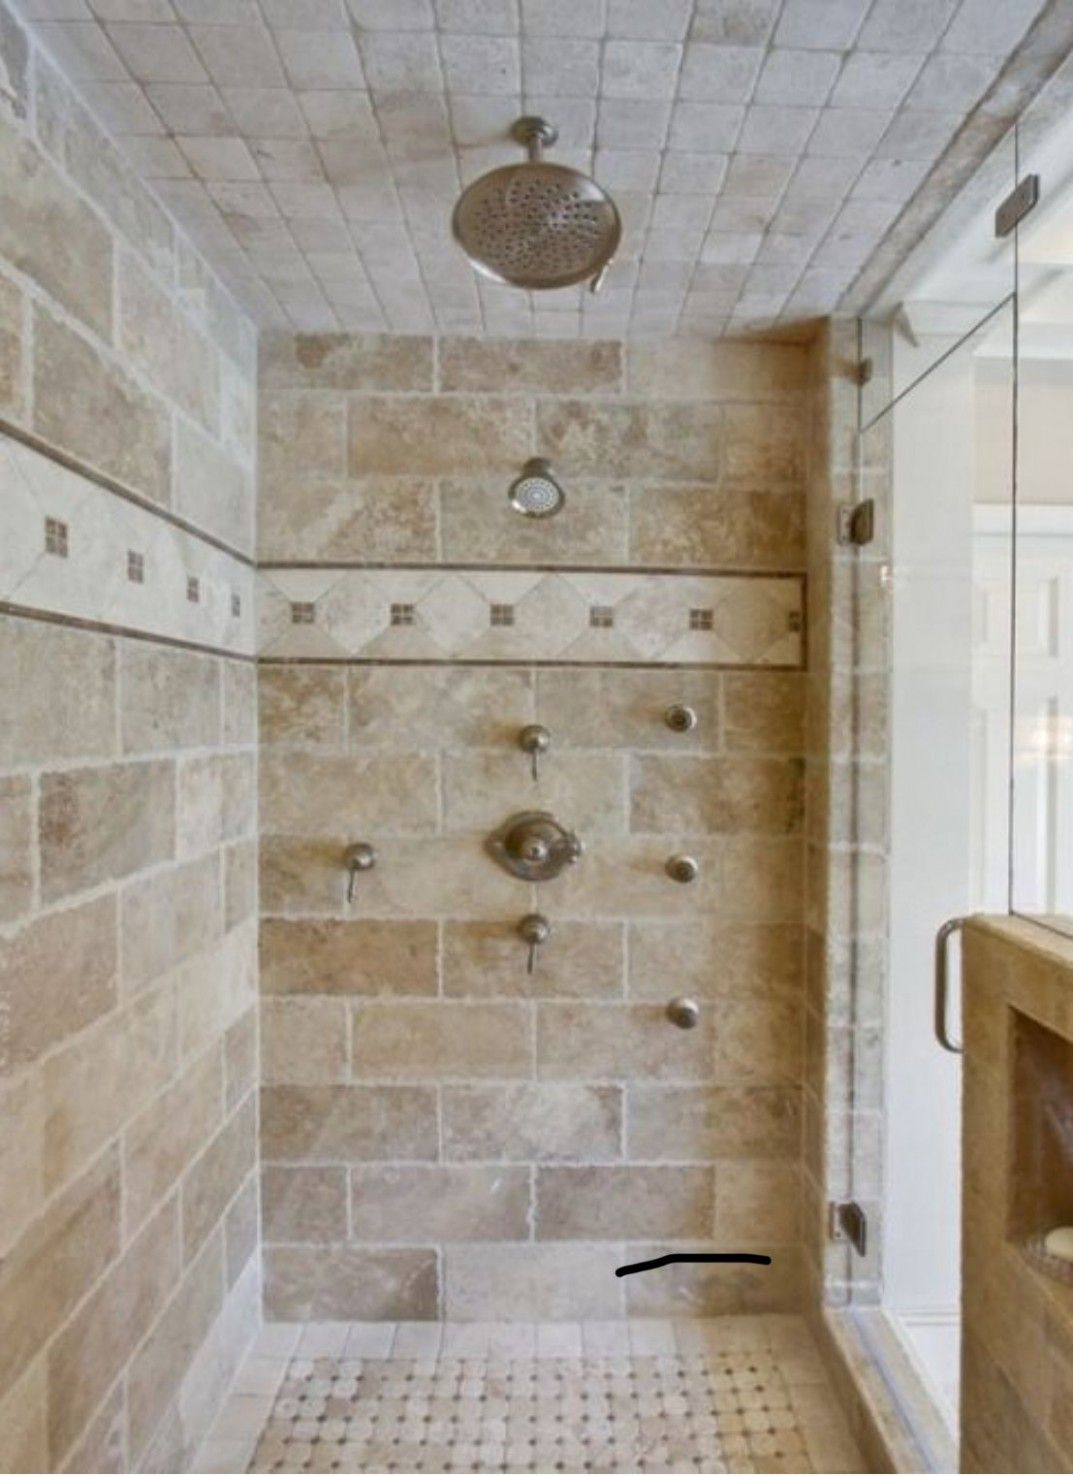 Bathroom Shower Tile Ideas In 2020 With Images Bathroom Shower